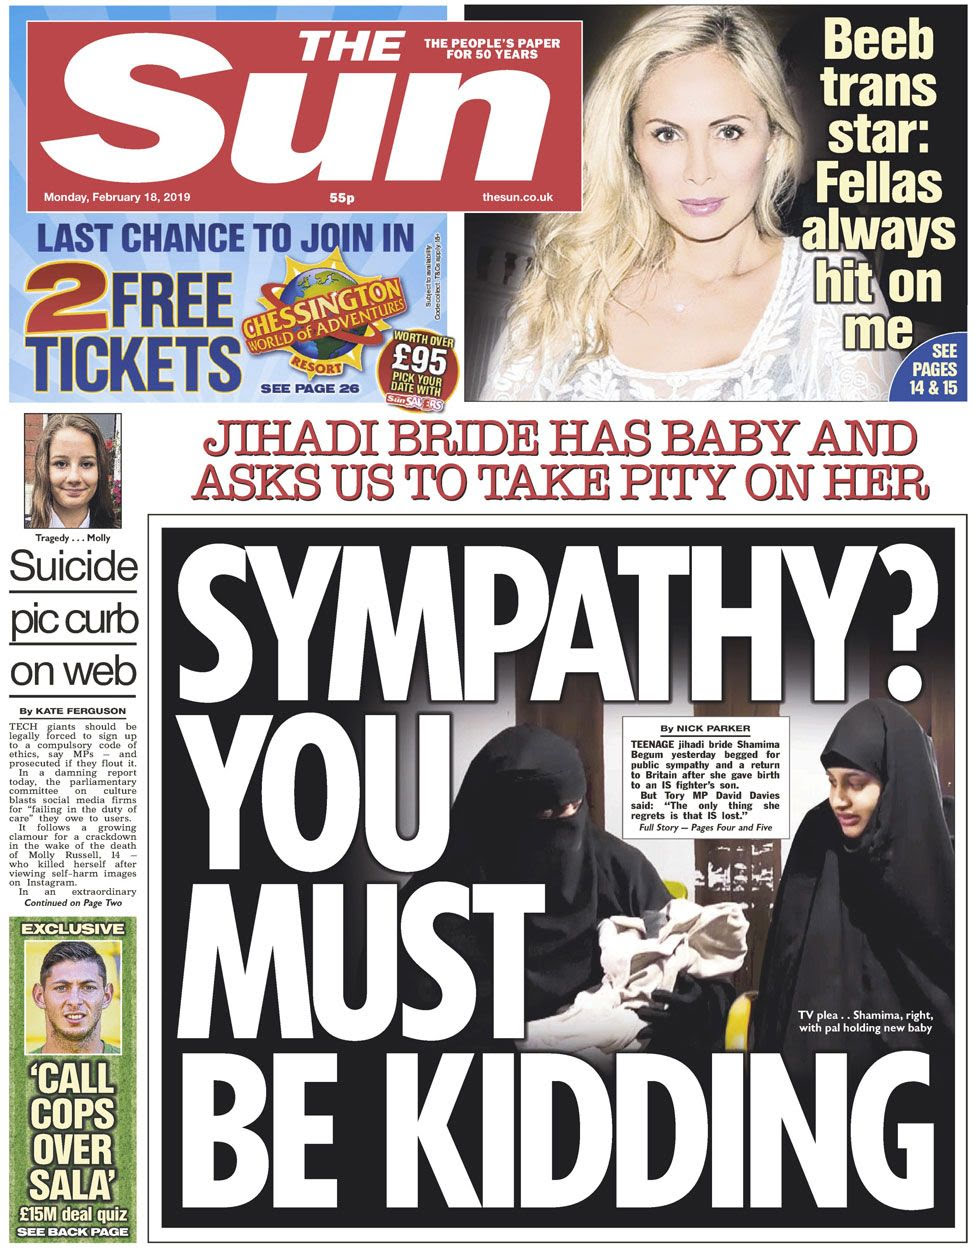 The Sun front page on 19 February 2019